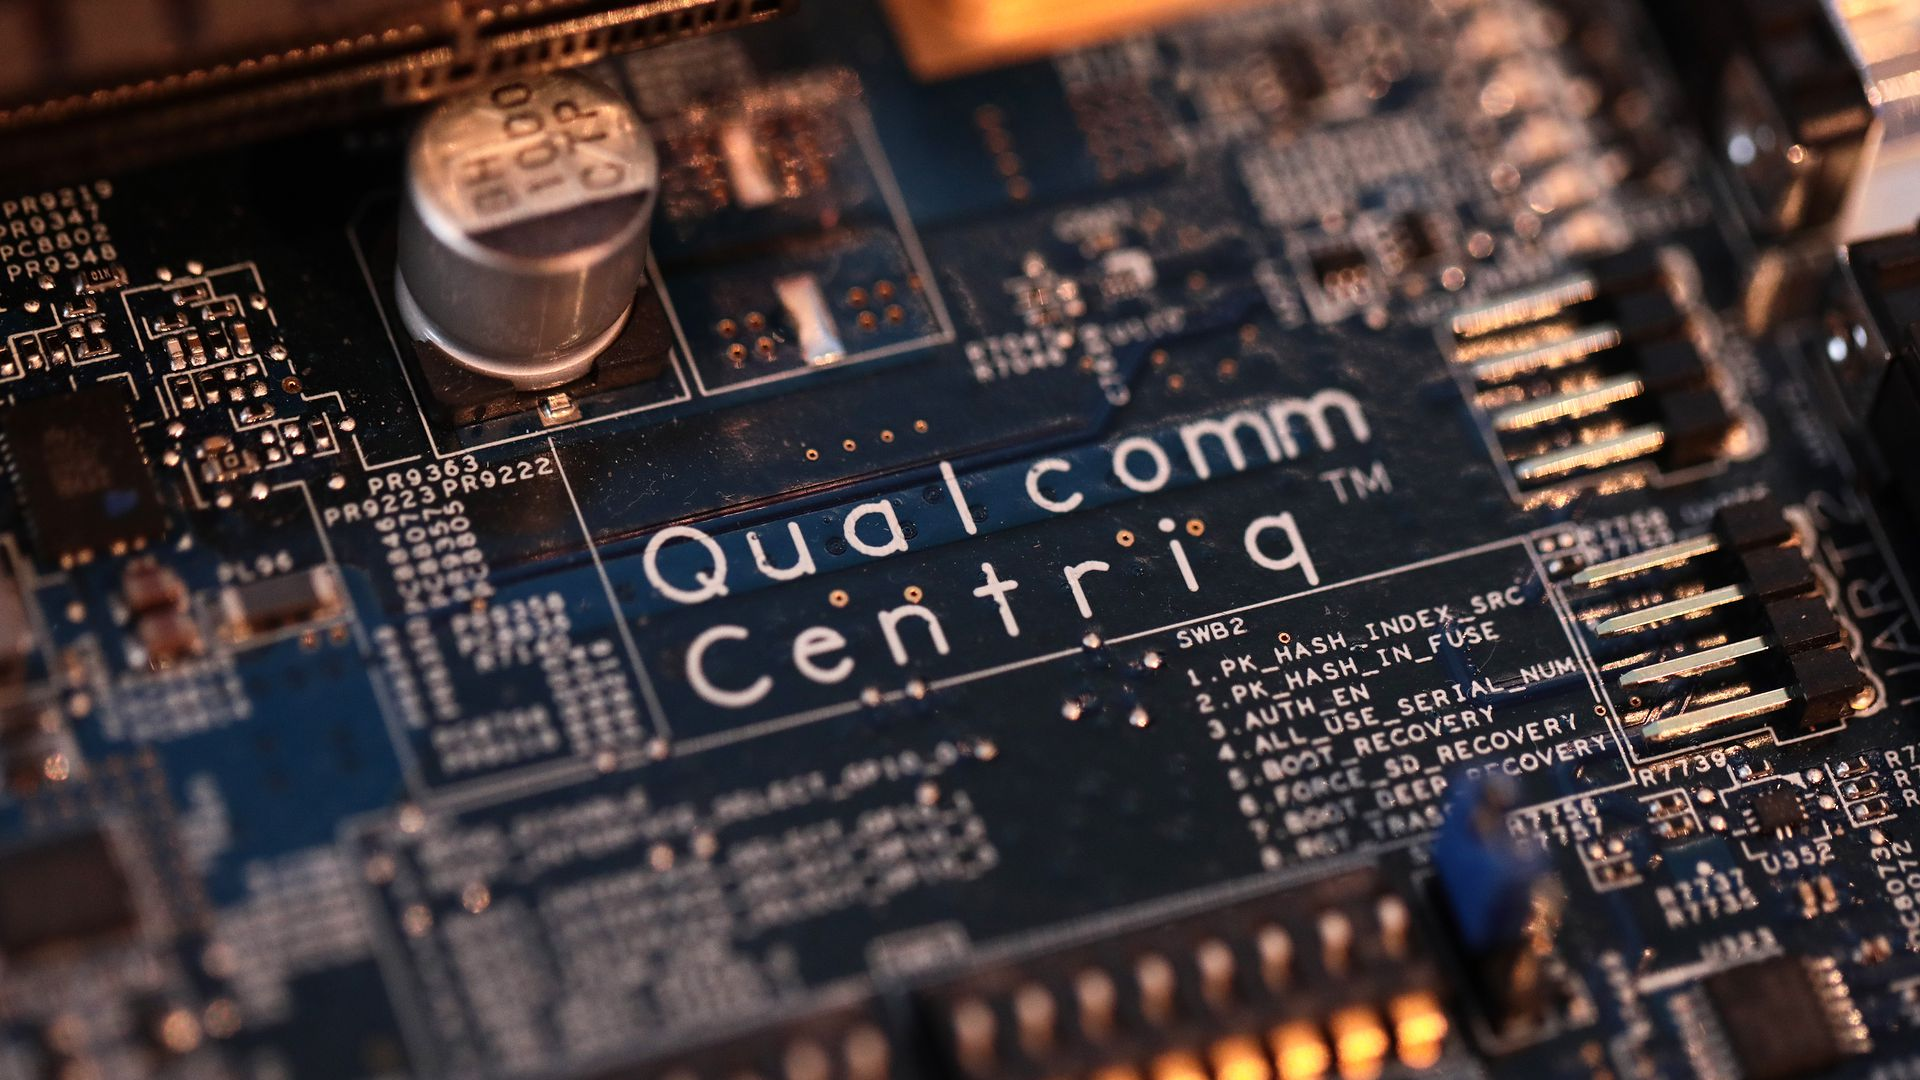 A close-up shot of a Qualcomm chip